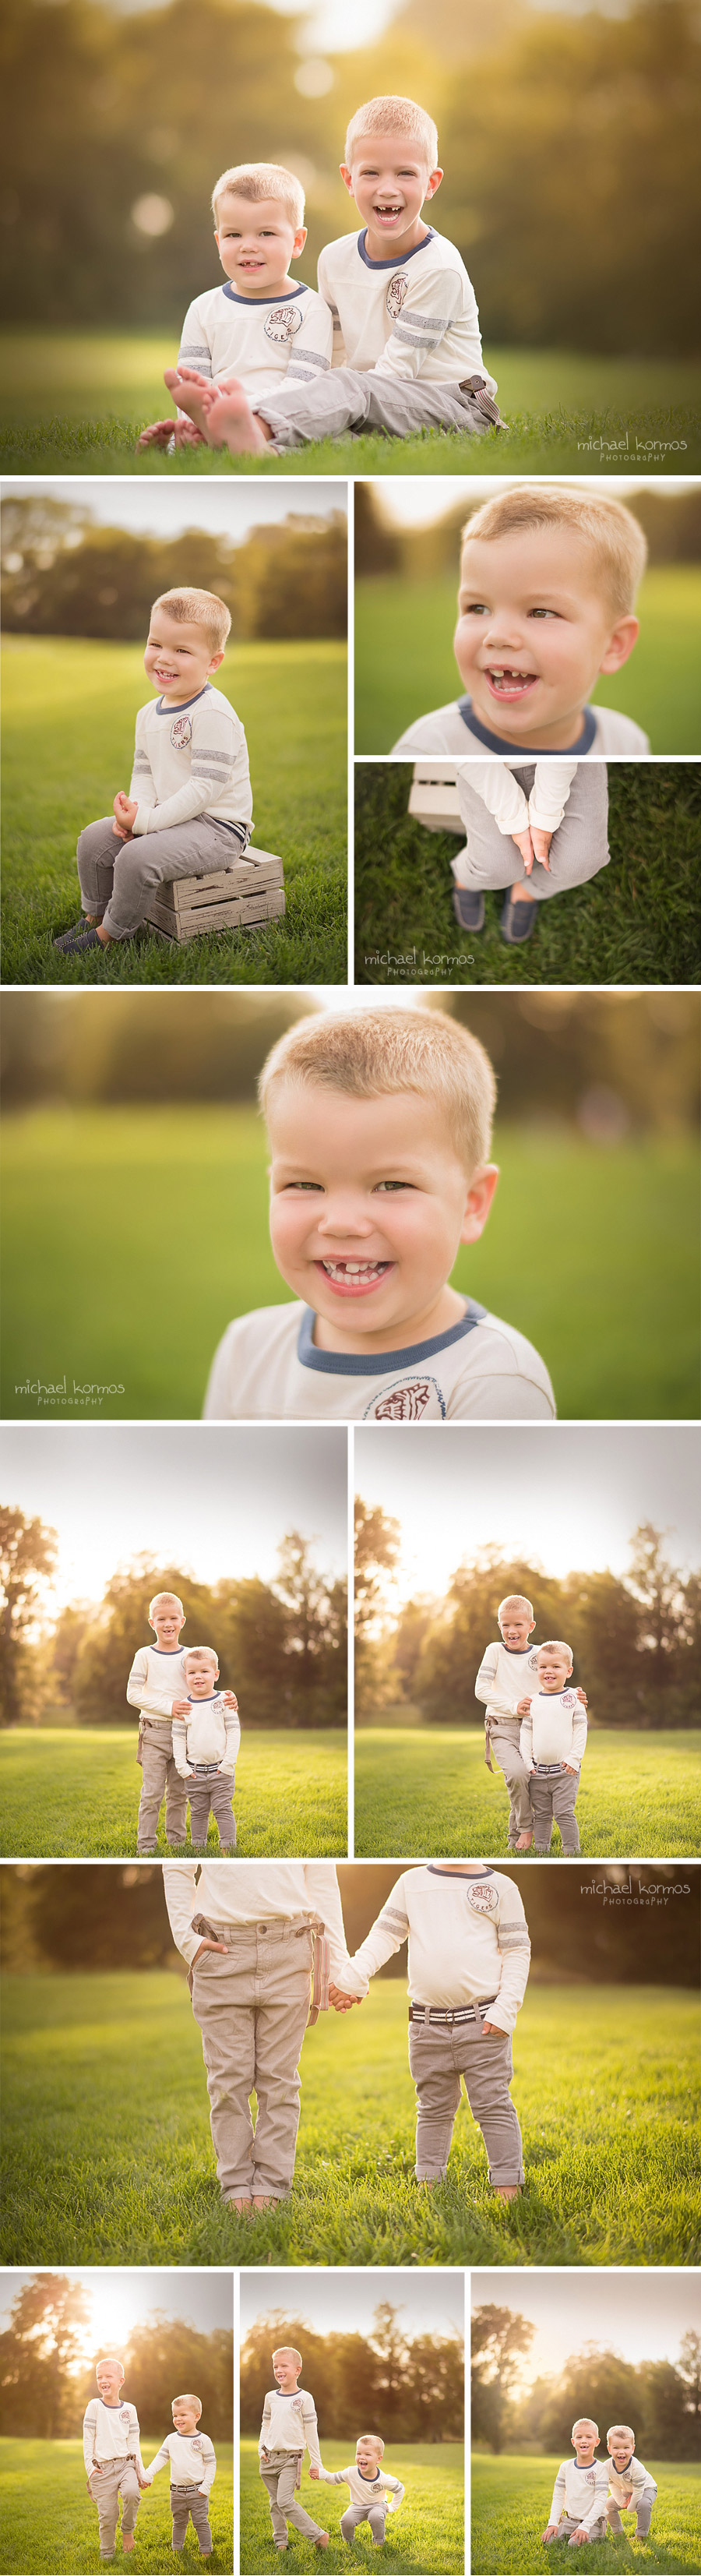 baby photography in central park manhattan